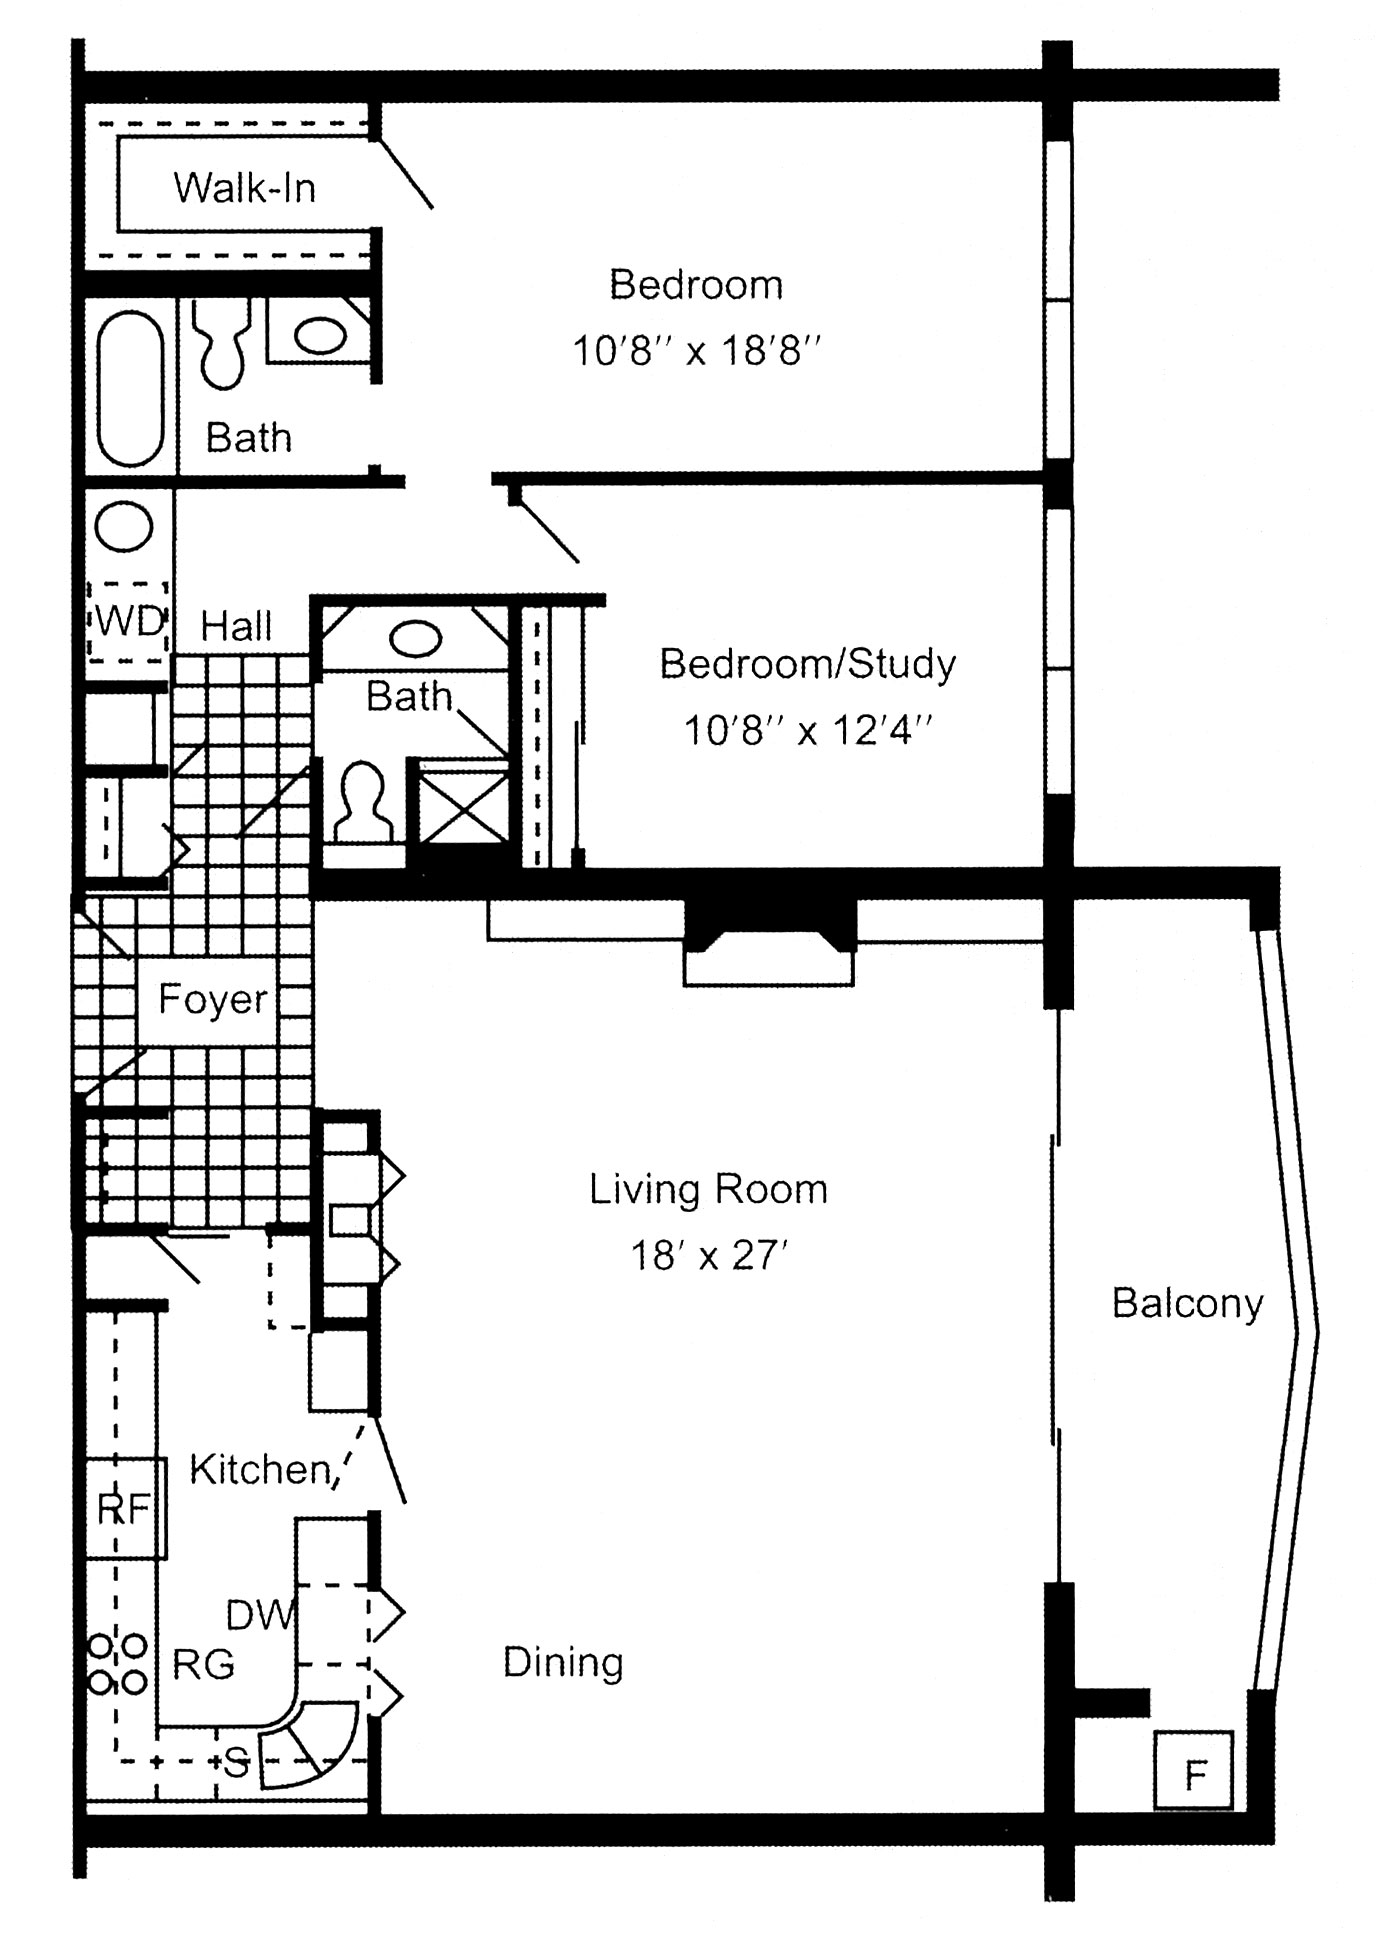 Luxury apartments in Erie, PA, South Shore Place, offers two bedroom, two bathroom 1,300 square foot apartments.